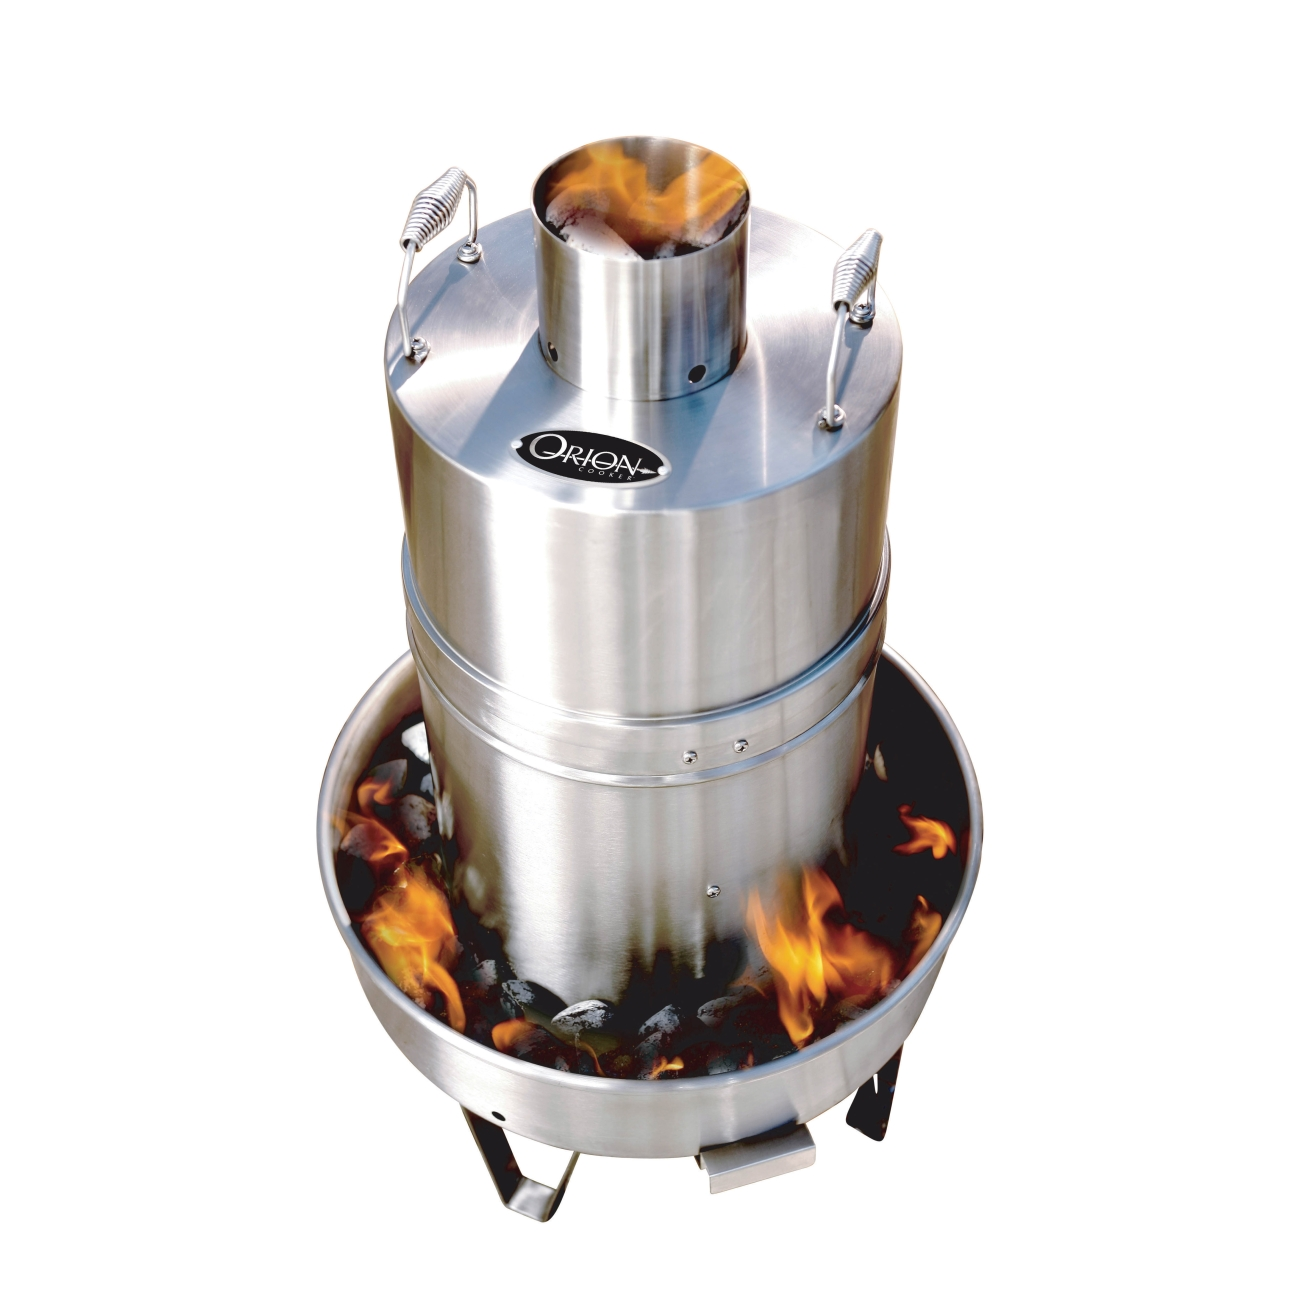 orion cooker, charcoal smokers